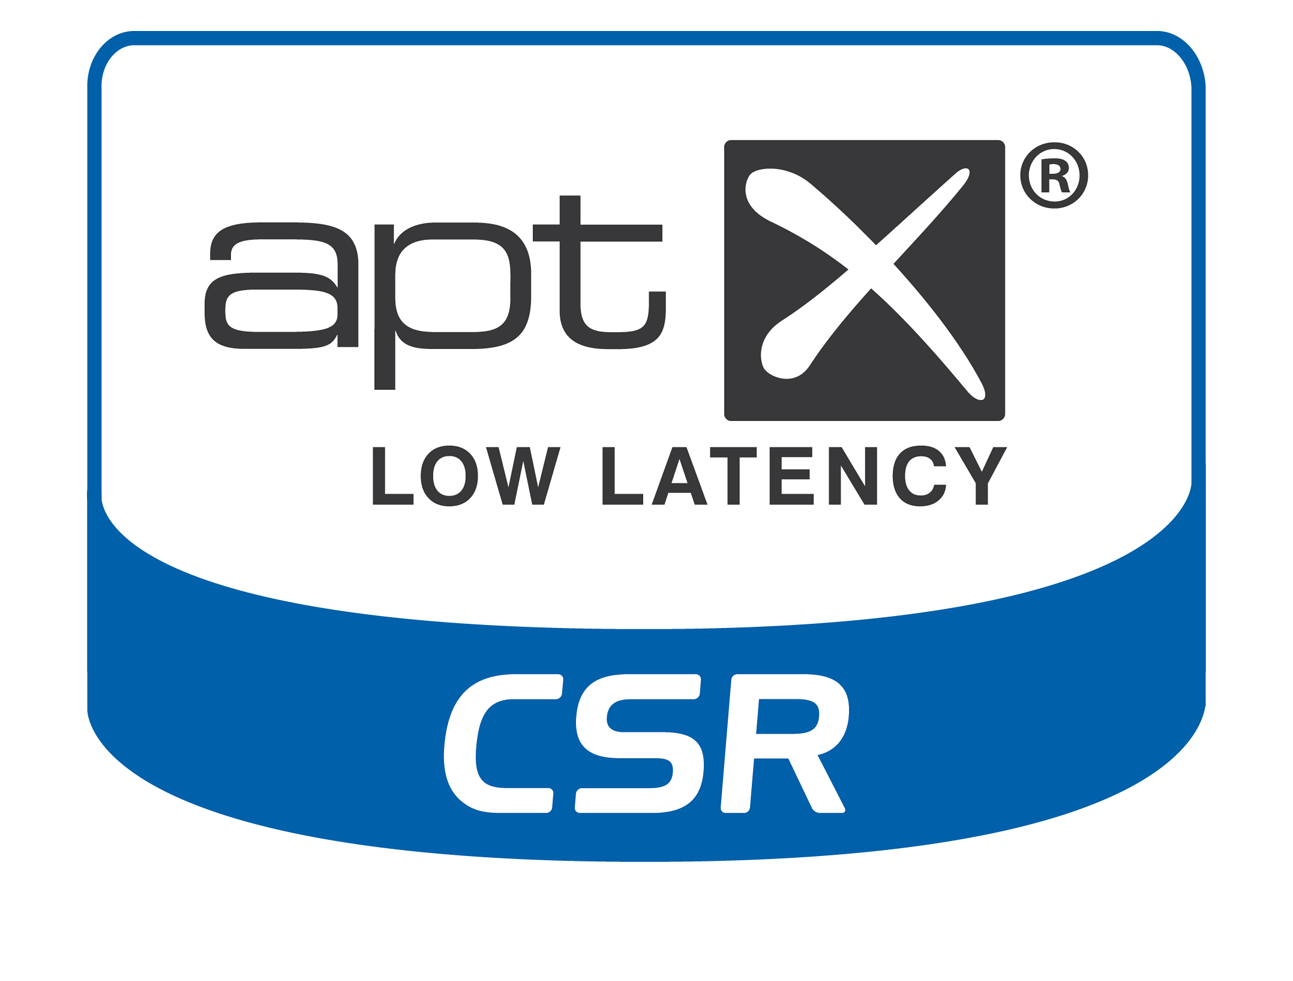 csr_aptx_low_latency.png